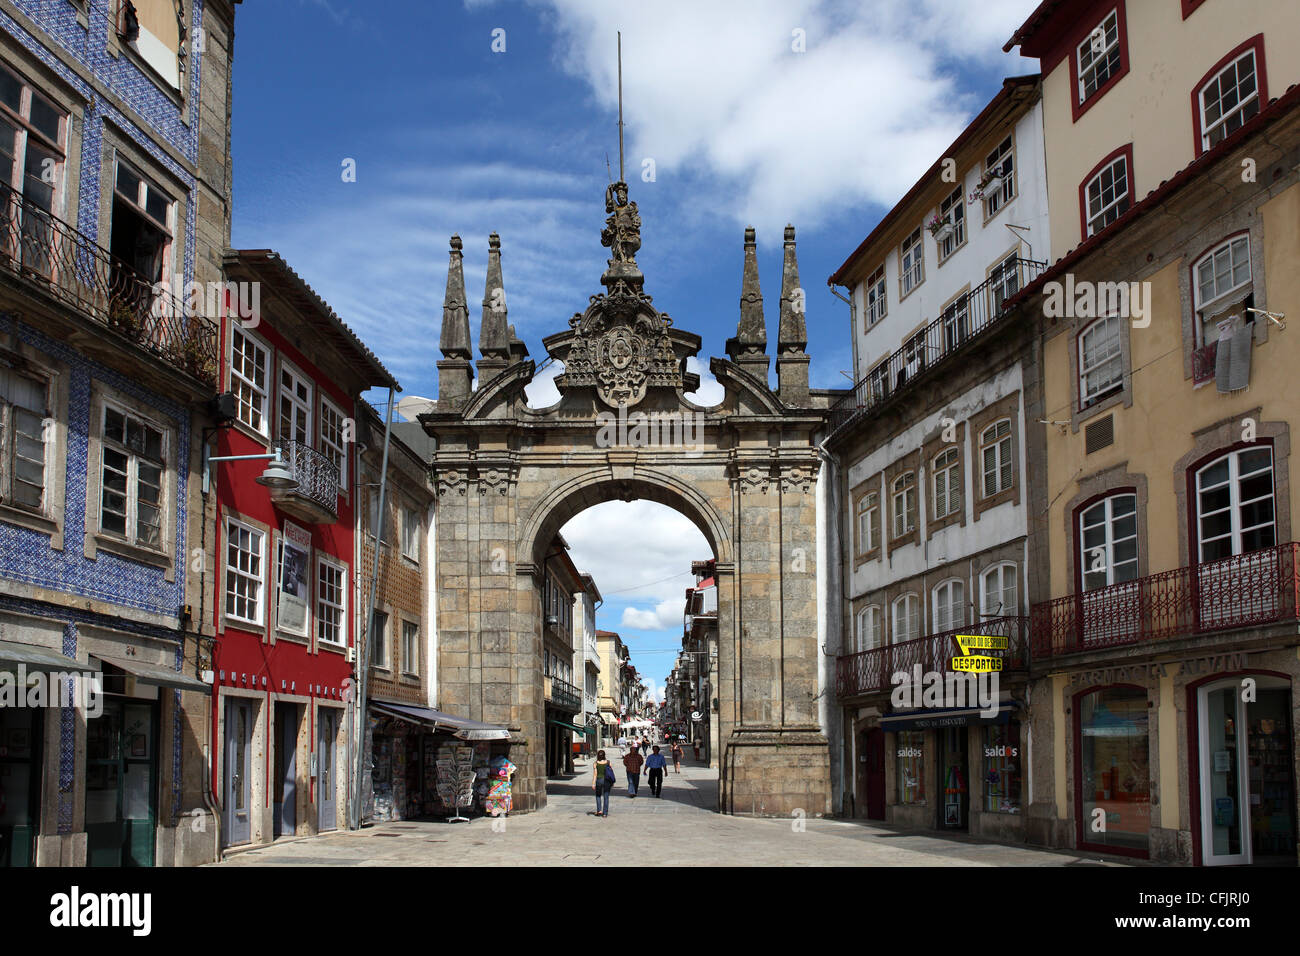 The Arco da Porta Nova, Baroque style city gate, and Rua Diogo de Sousa, Braga, Minho, Portugal, Europe - Stock Image